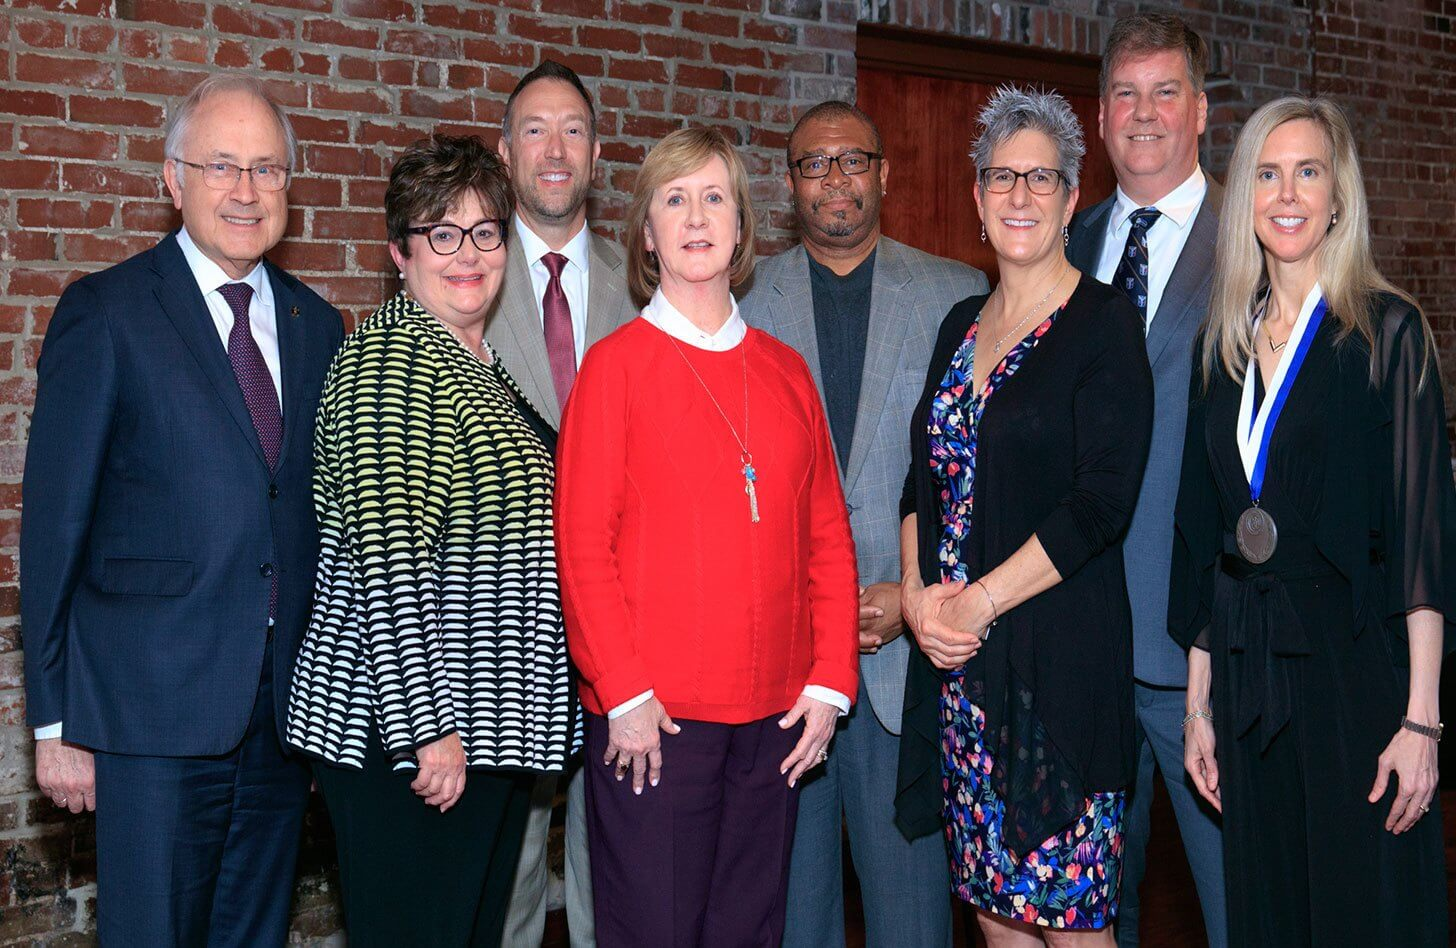 From left to right: Dr. Wilmott, Diane Brockmeier, Paul Ross, Candace Jennings, Dr. Henry Randall, Jane Beckman, Dr. Mark Schnitzler, Dr. Krista Lentine